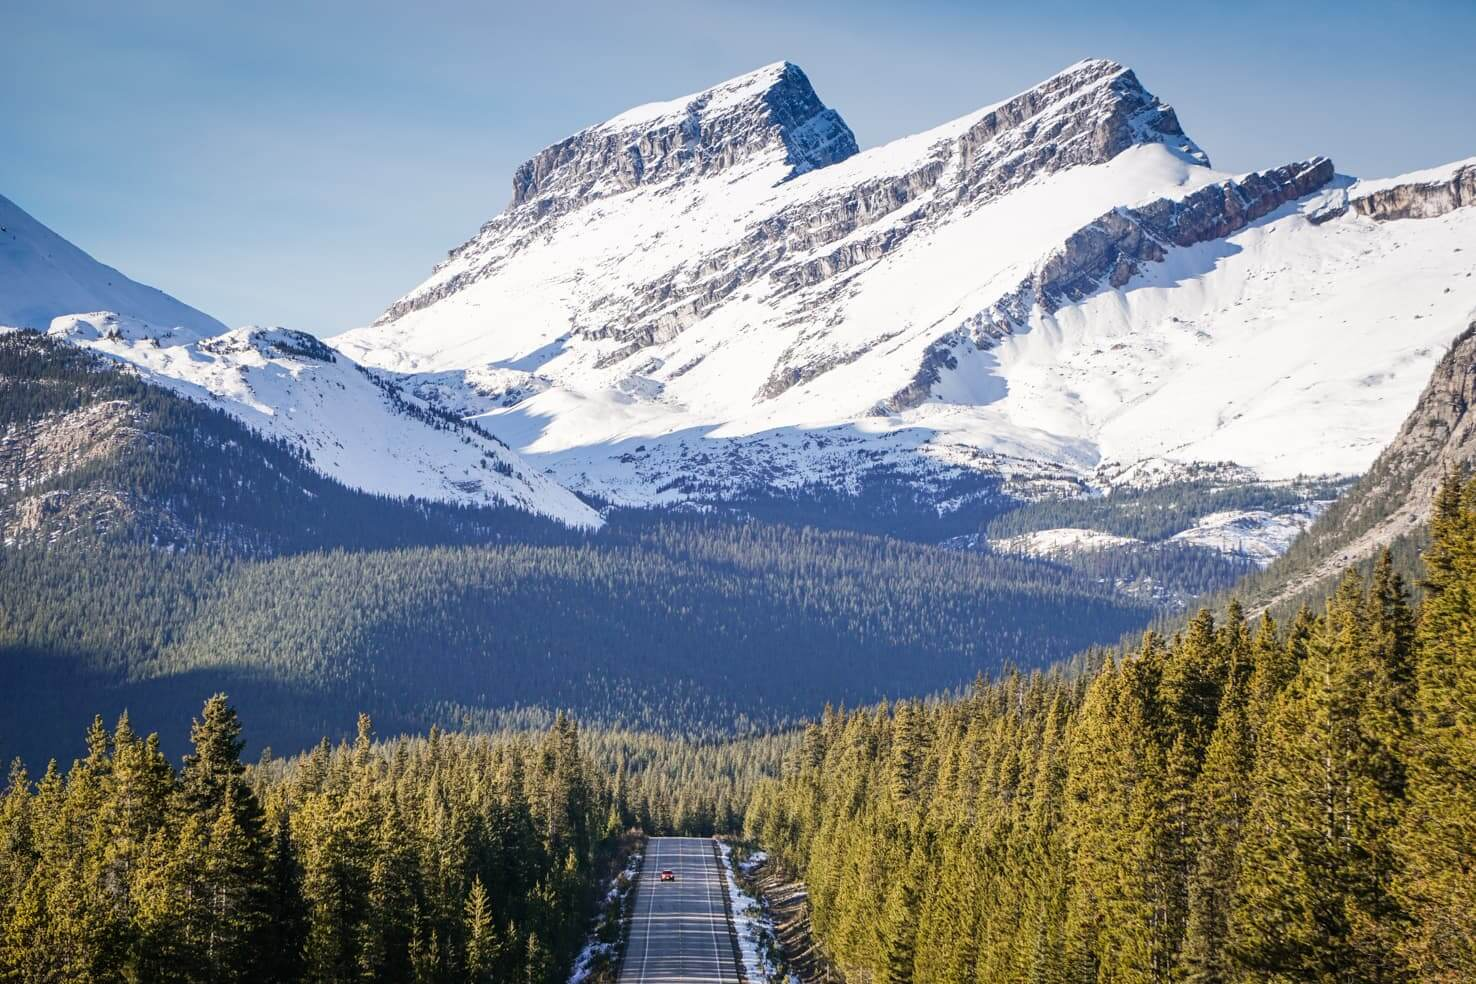 3. Icefields Parkway, Canada